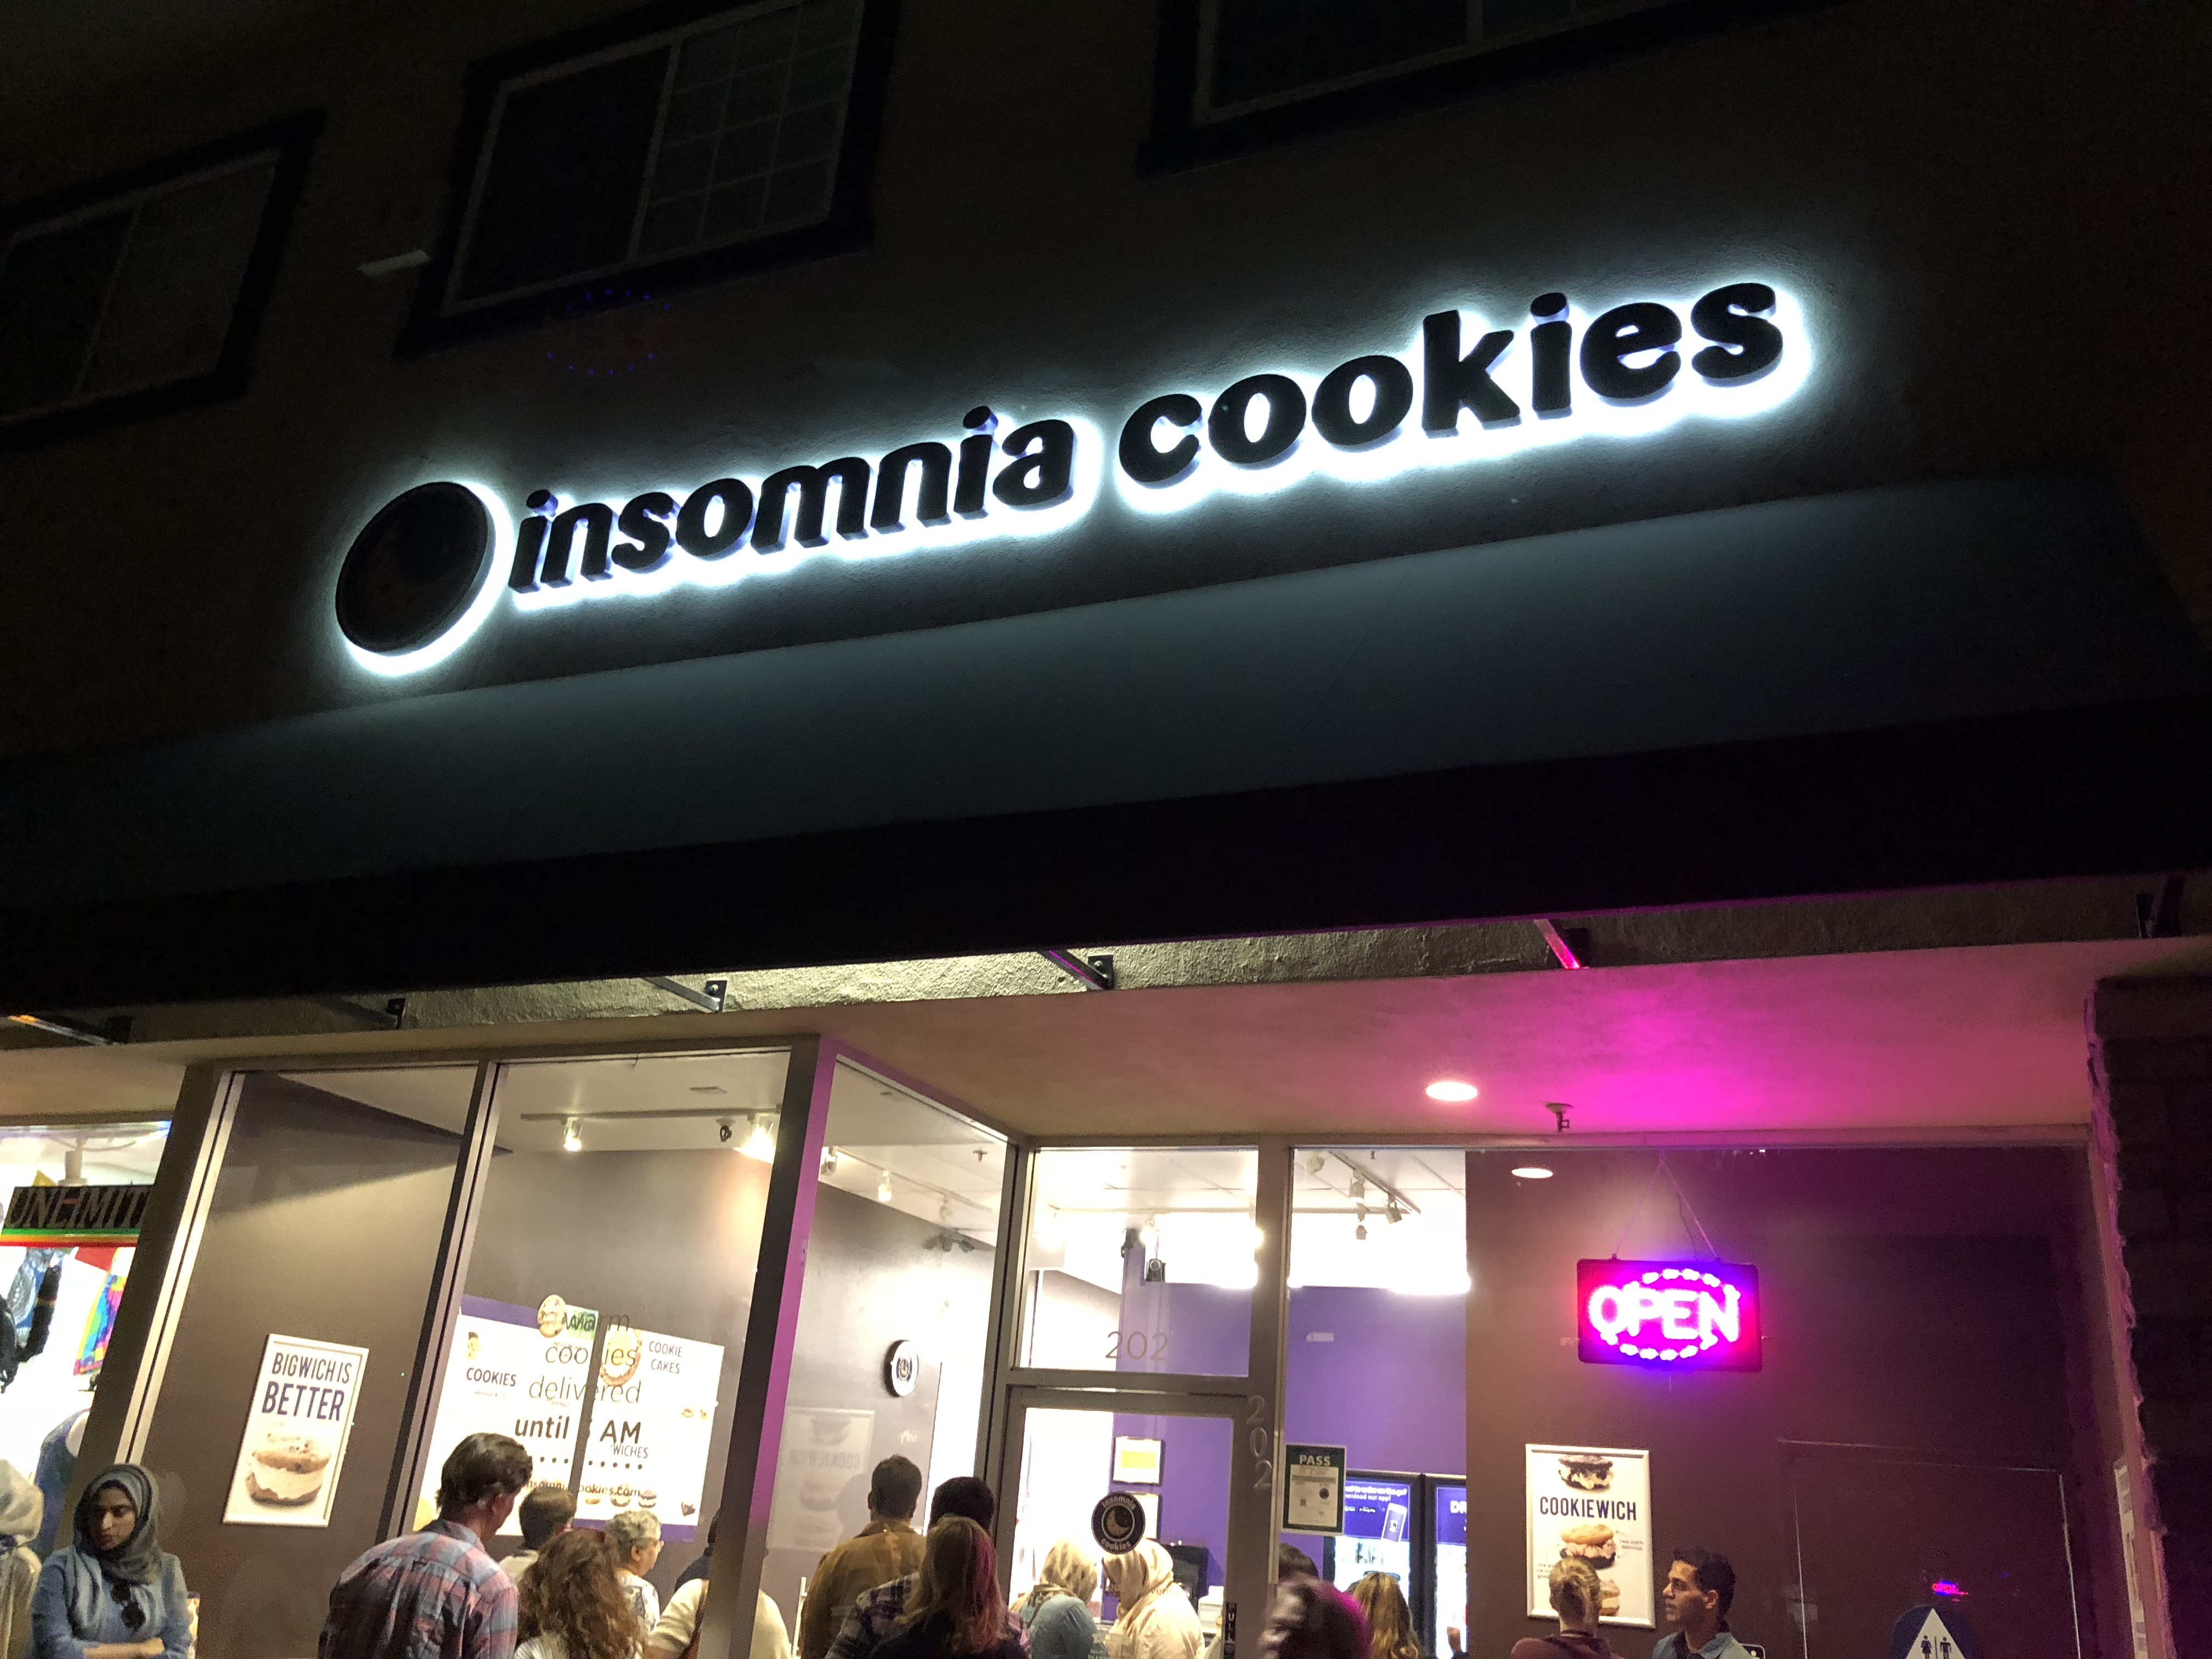 Review: Insomnia Cookies lacks quality, but is convenient